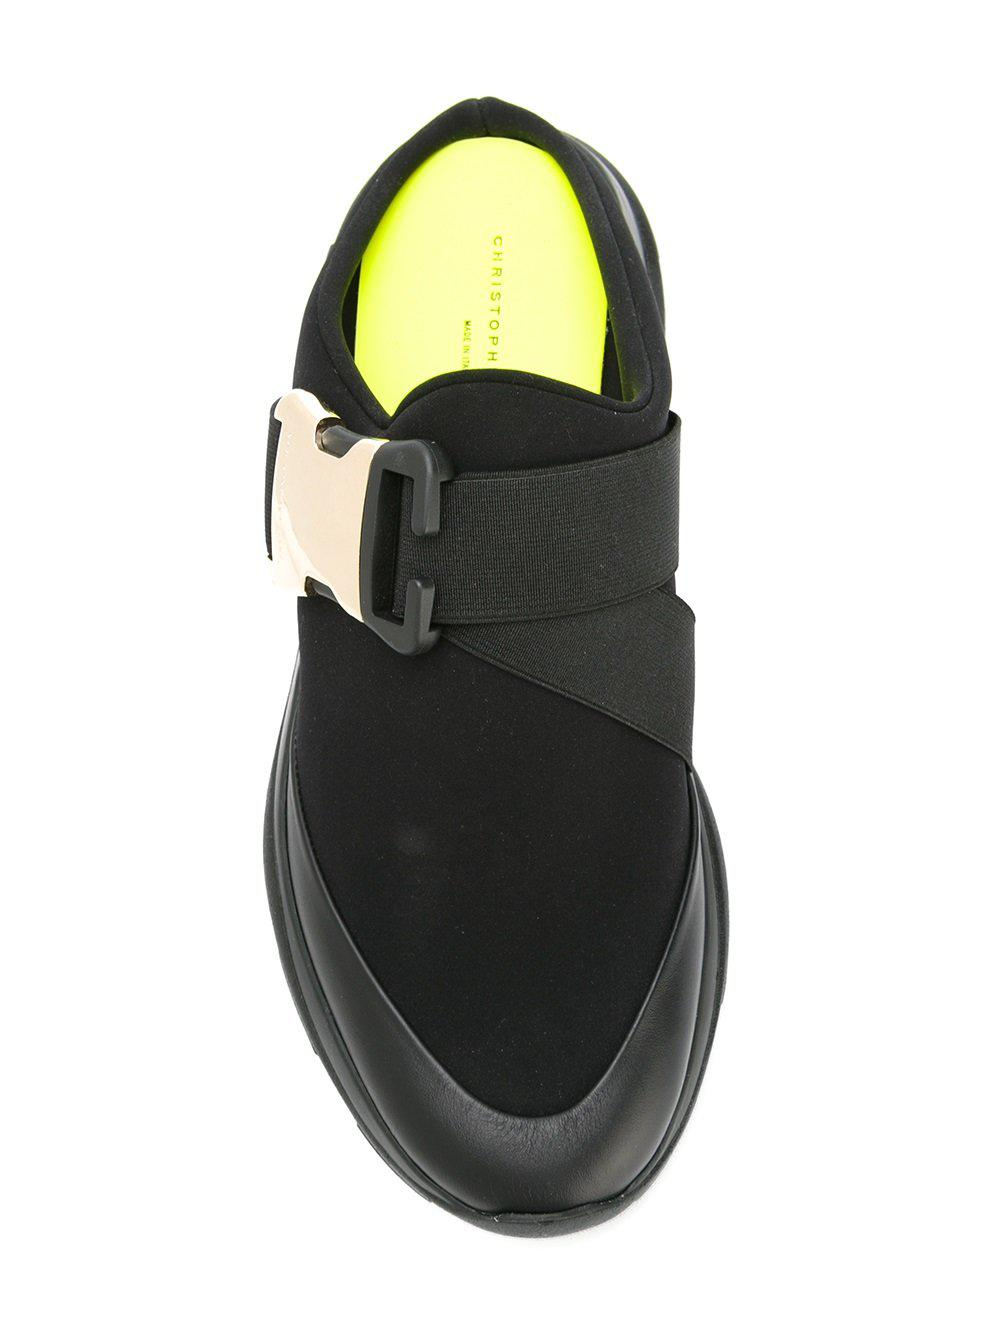 Christopher Kane Leather Safety Buckle Sneakers in Black